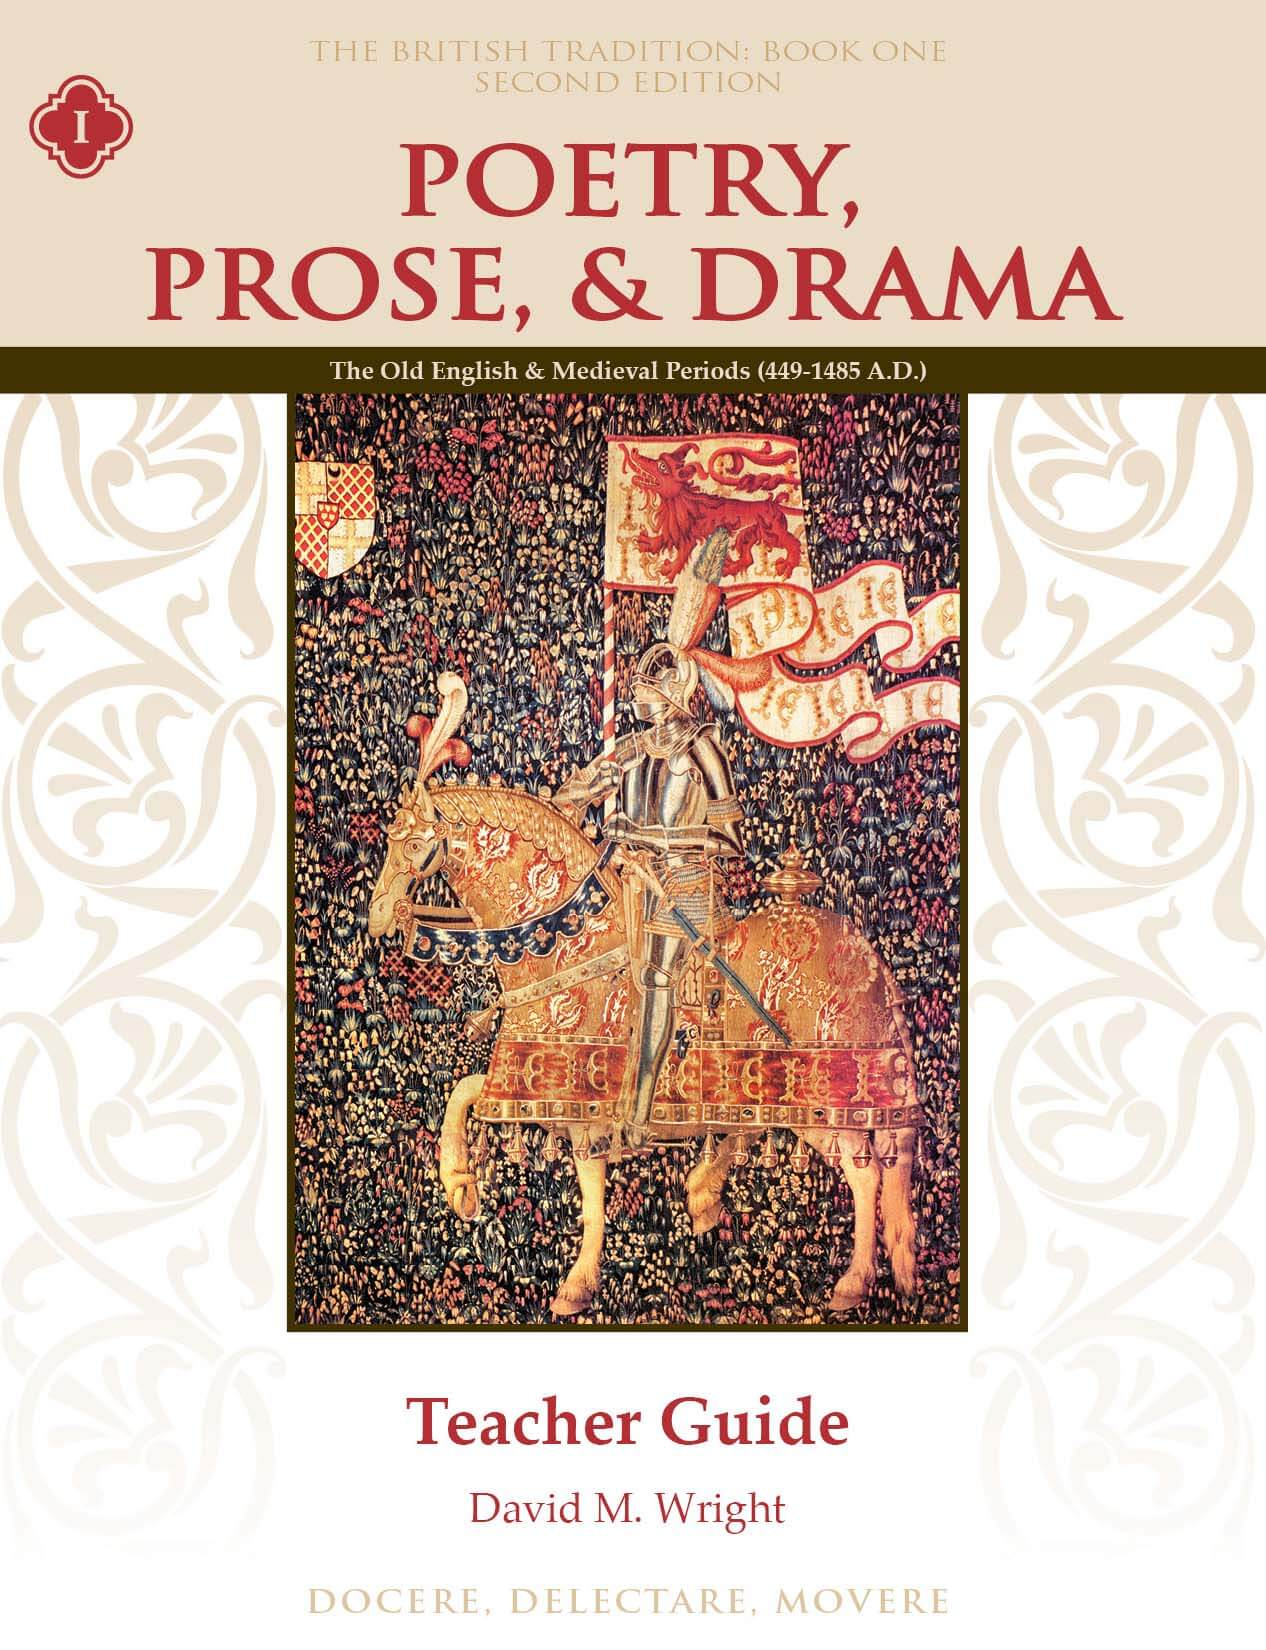 Poetry, Prose, & Drama Book One Teacher Guide, Second Edition